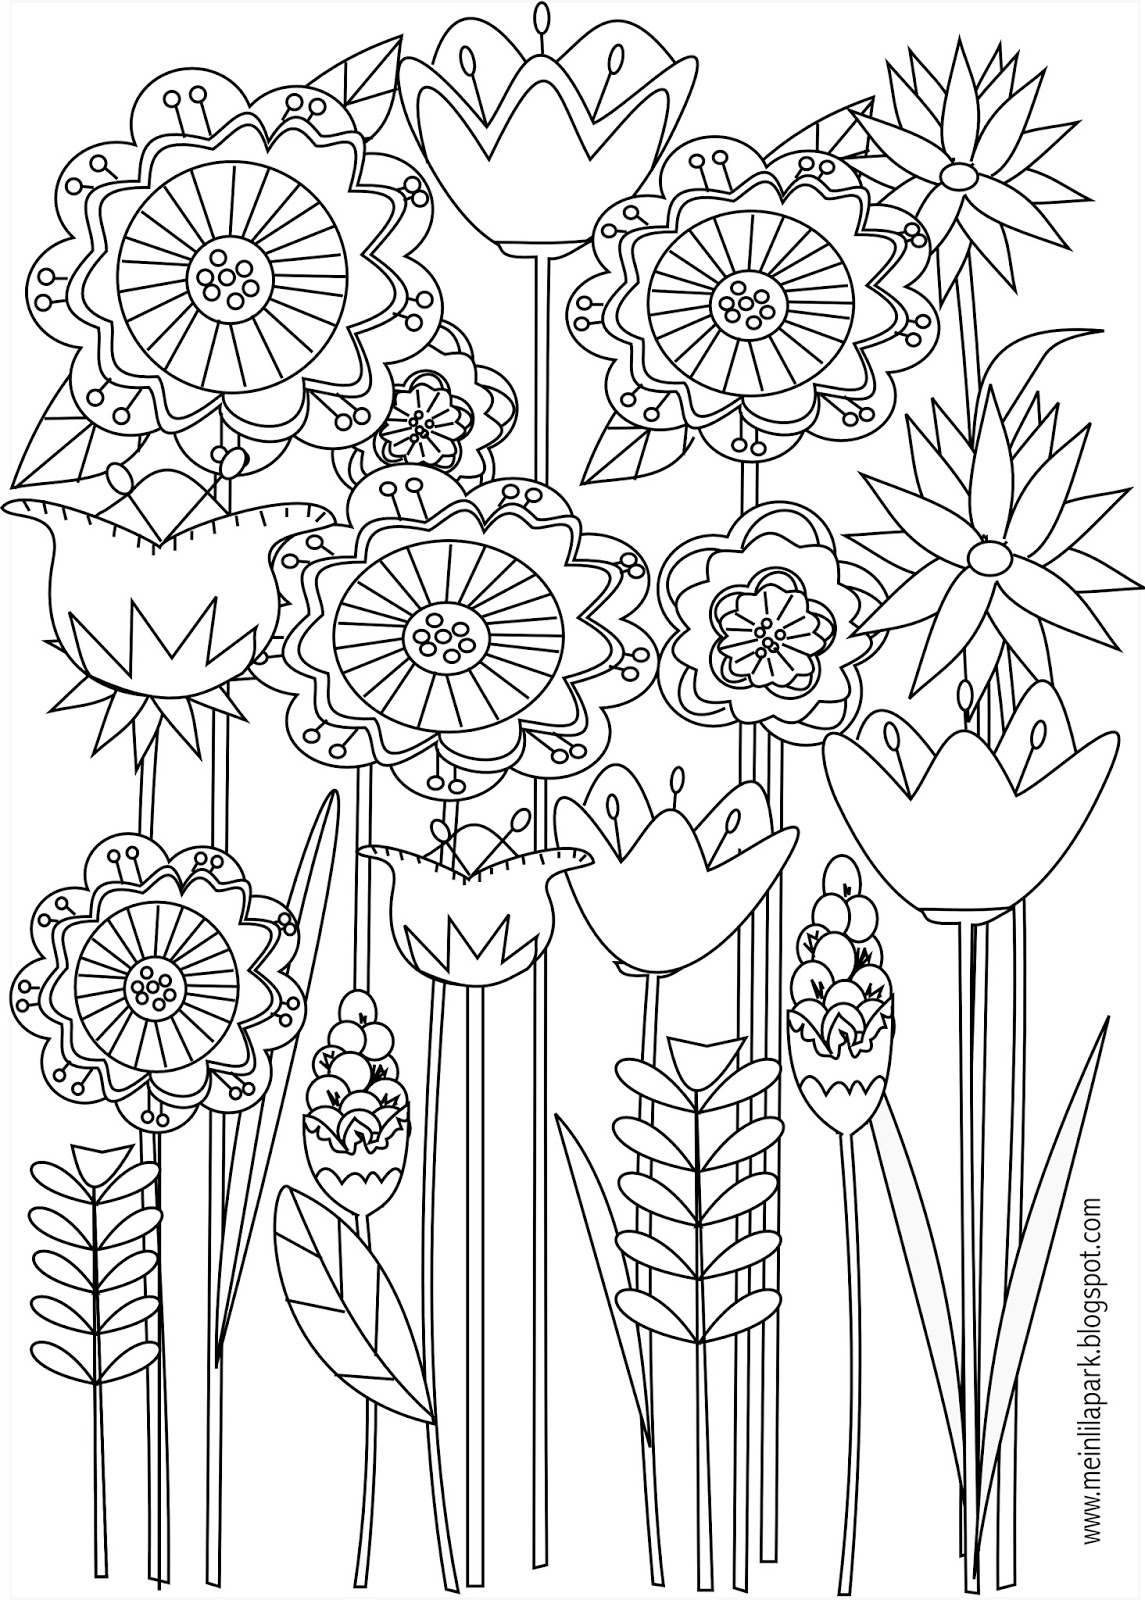 flower coloring pages to print spring flower coloring pages to download and print for free pages coloring to print flower